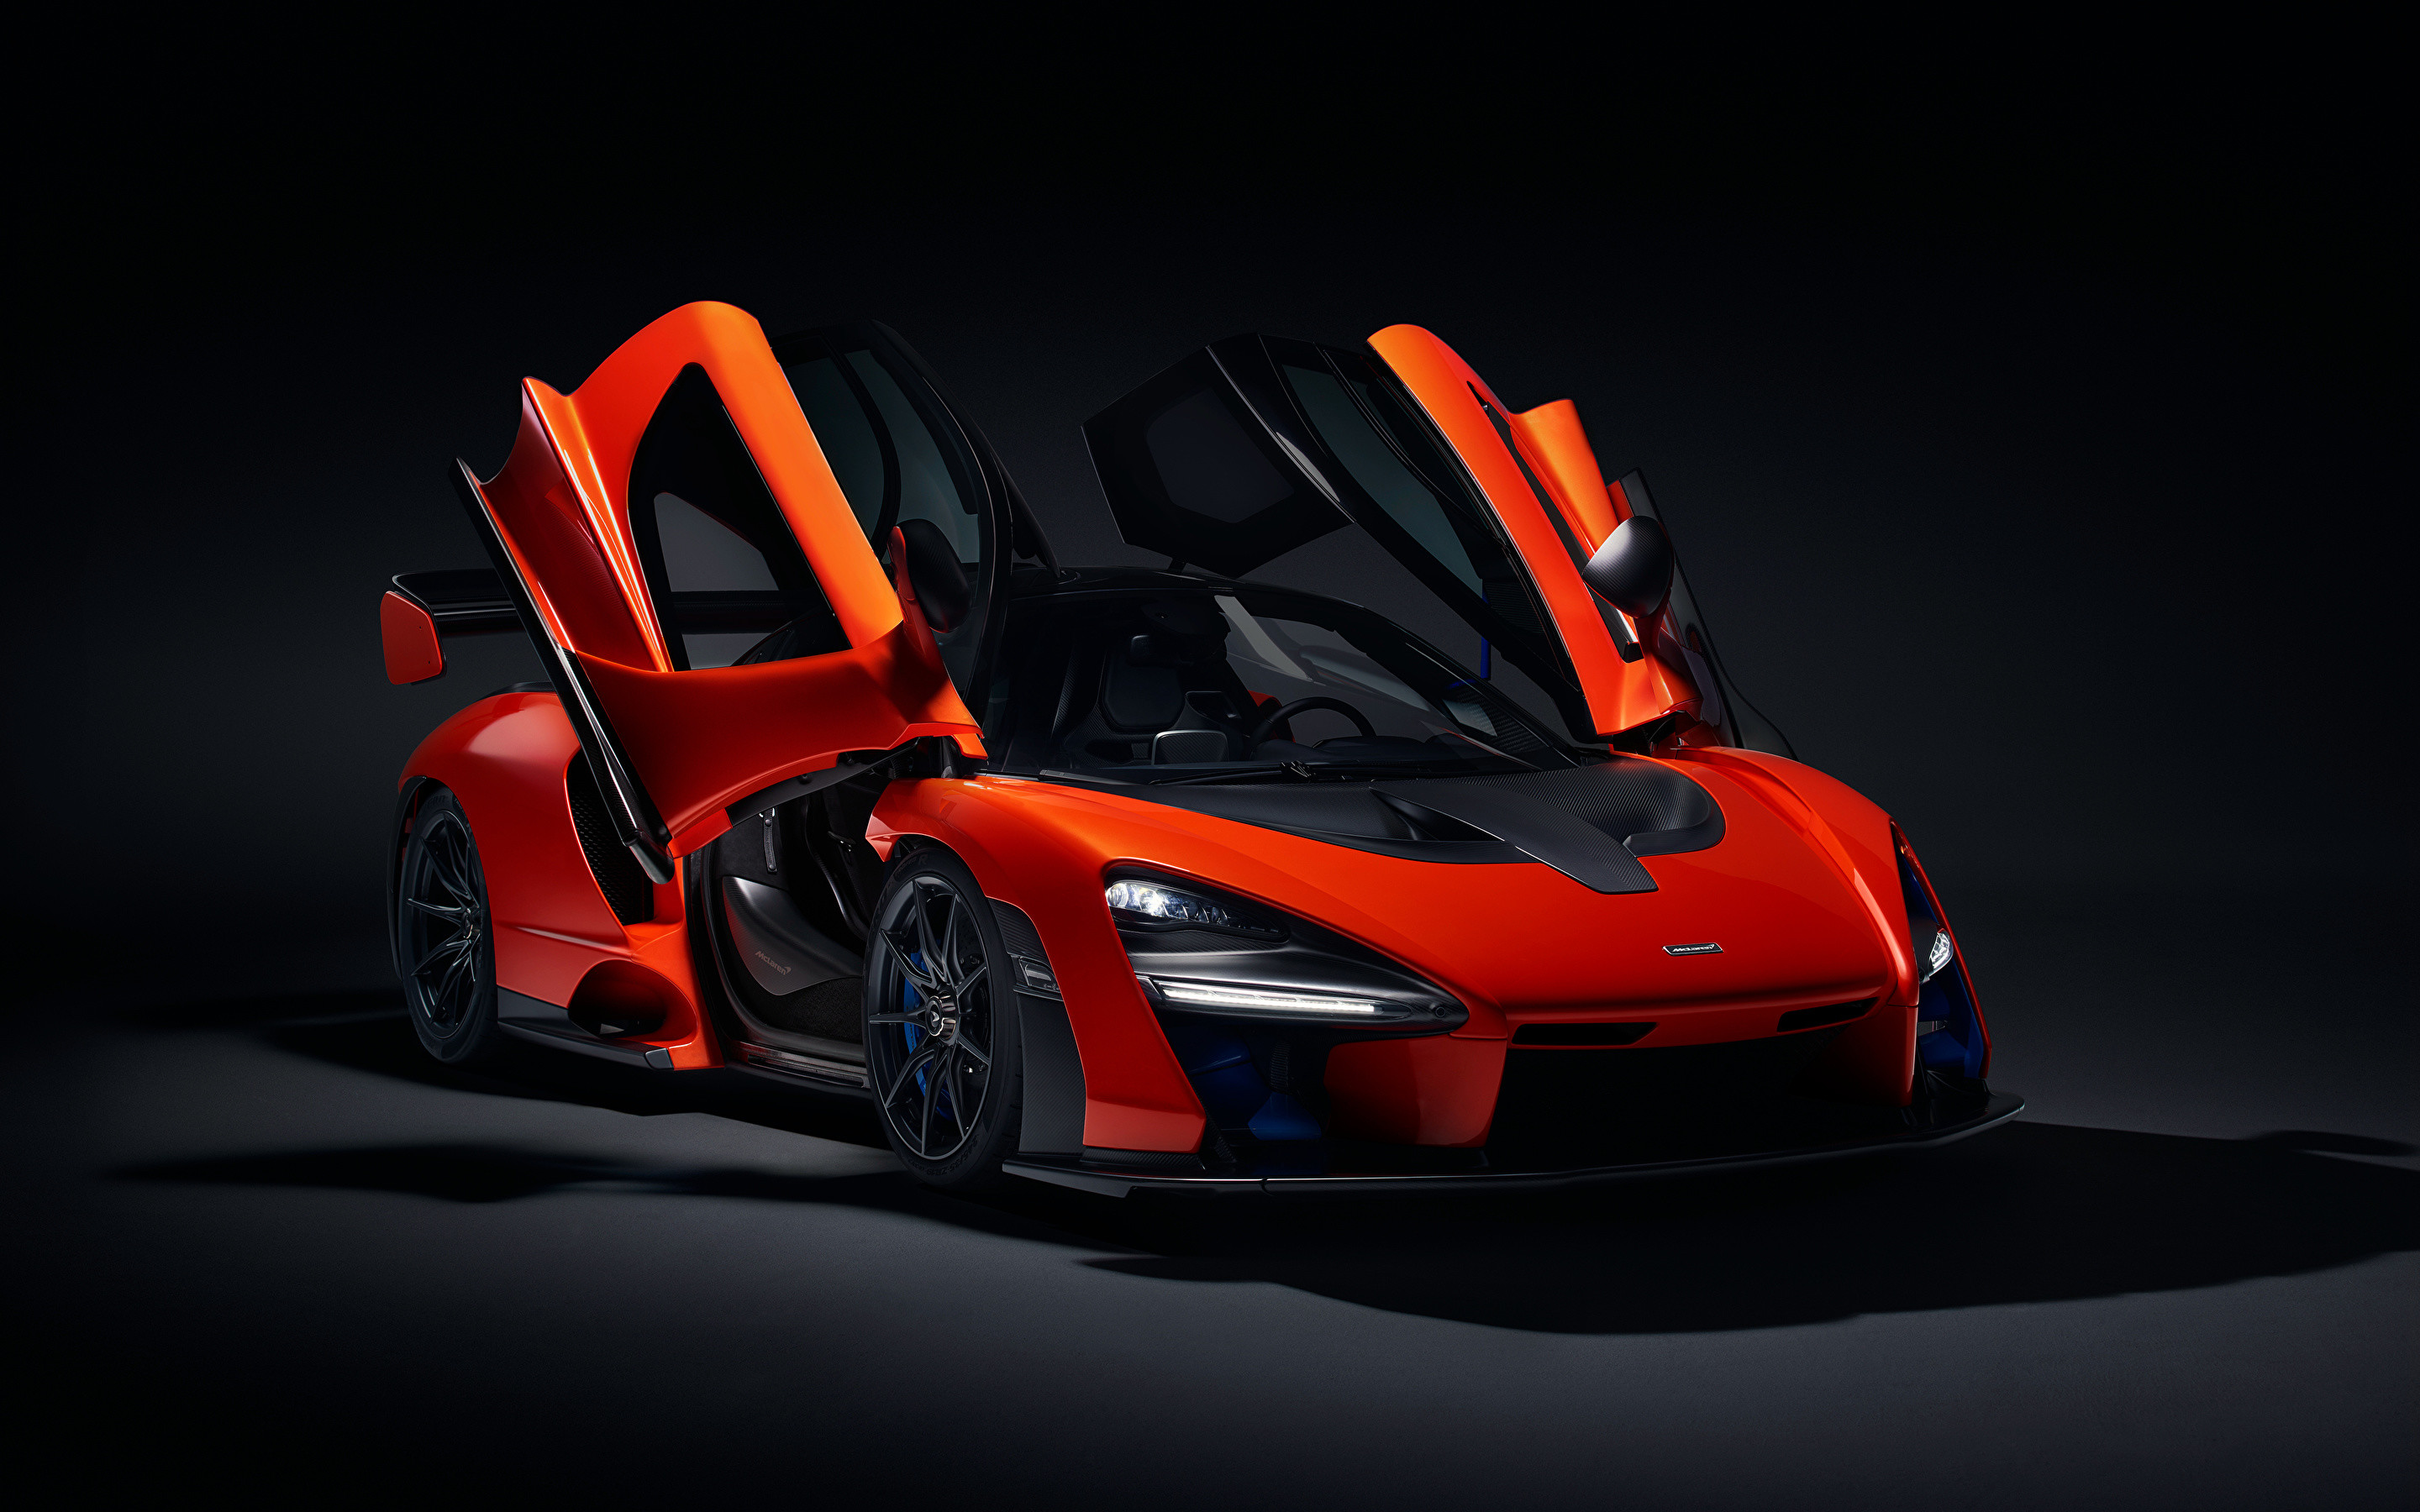 2880x1800 Image McLaren 2018 Senna (P15) Red Cars Black background  auto  automobile